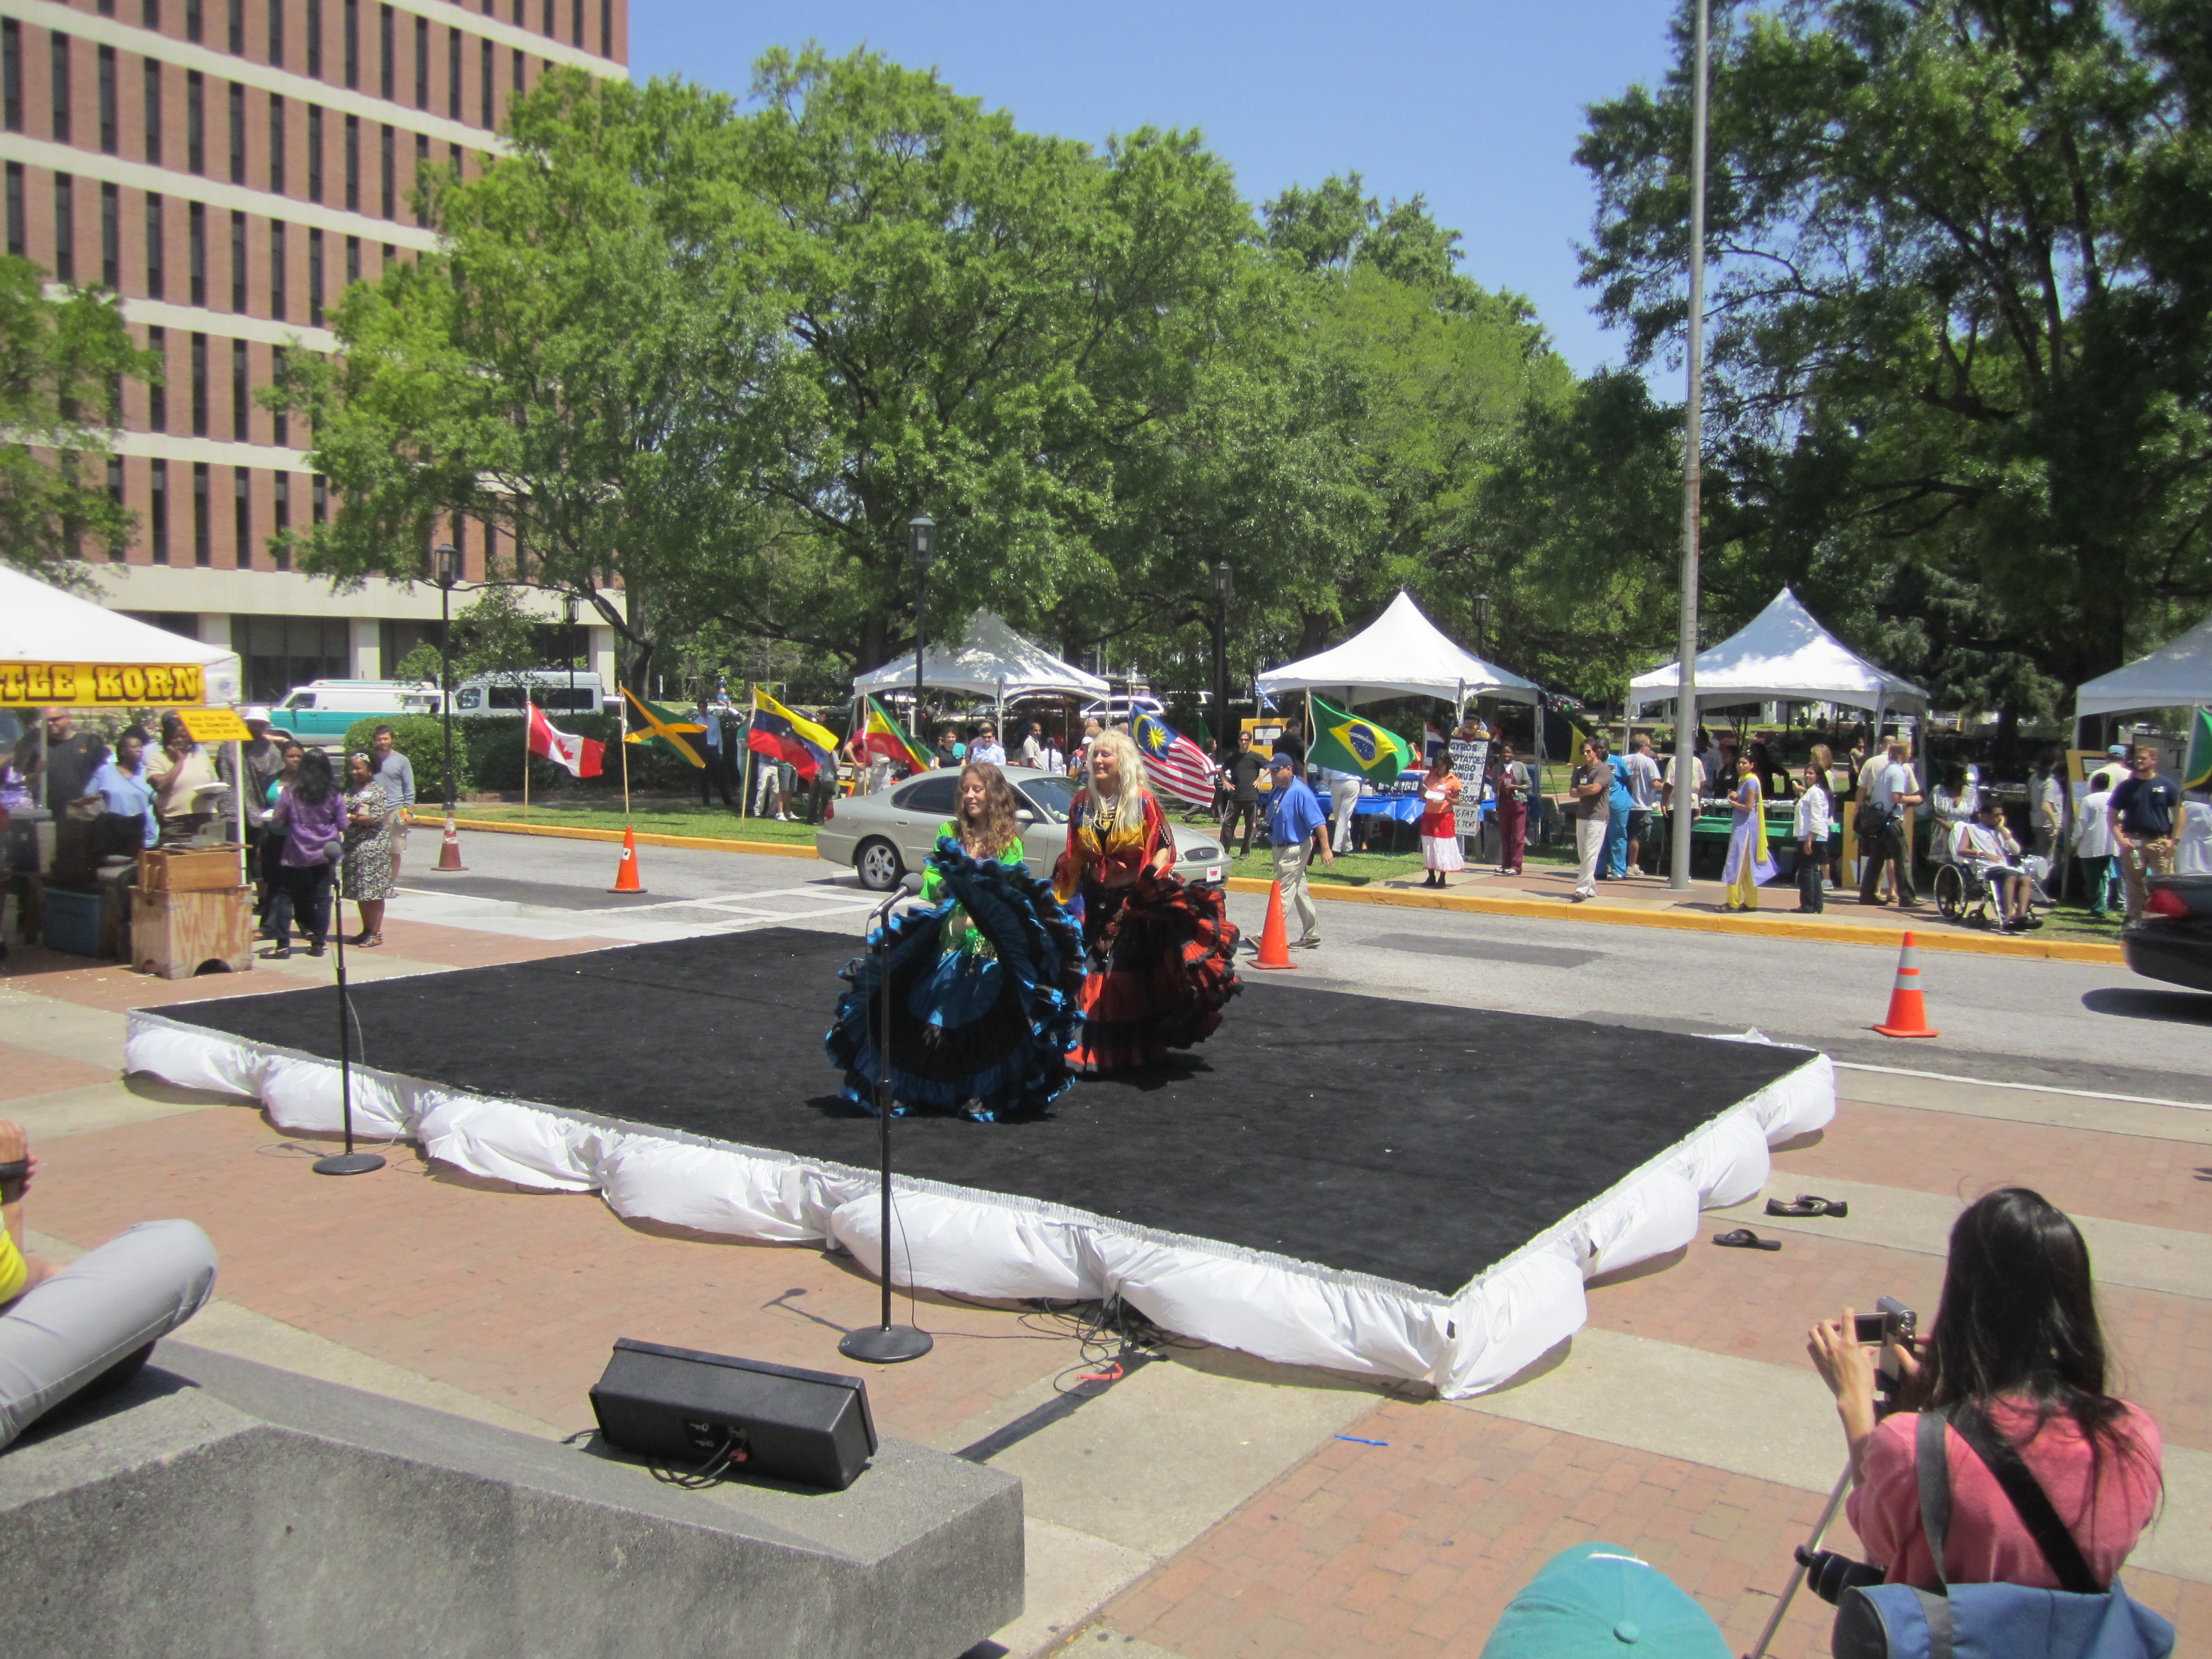 April 12, 2011 - MUSC International Festival